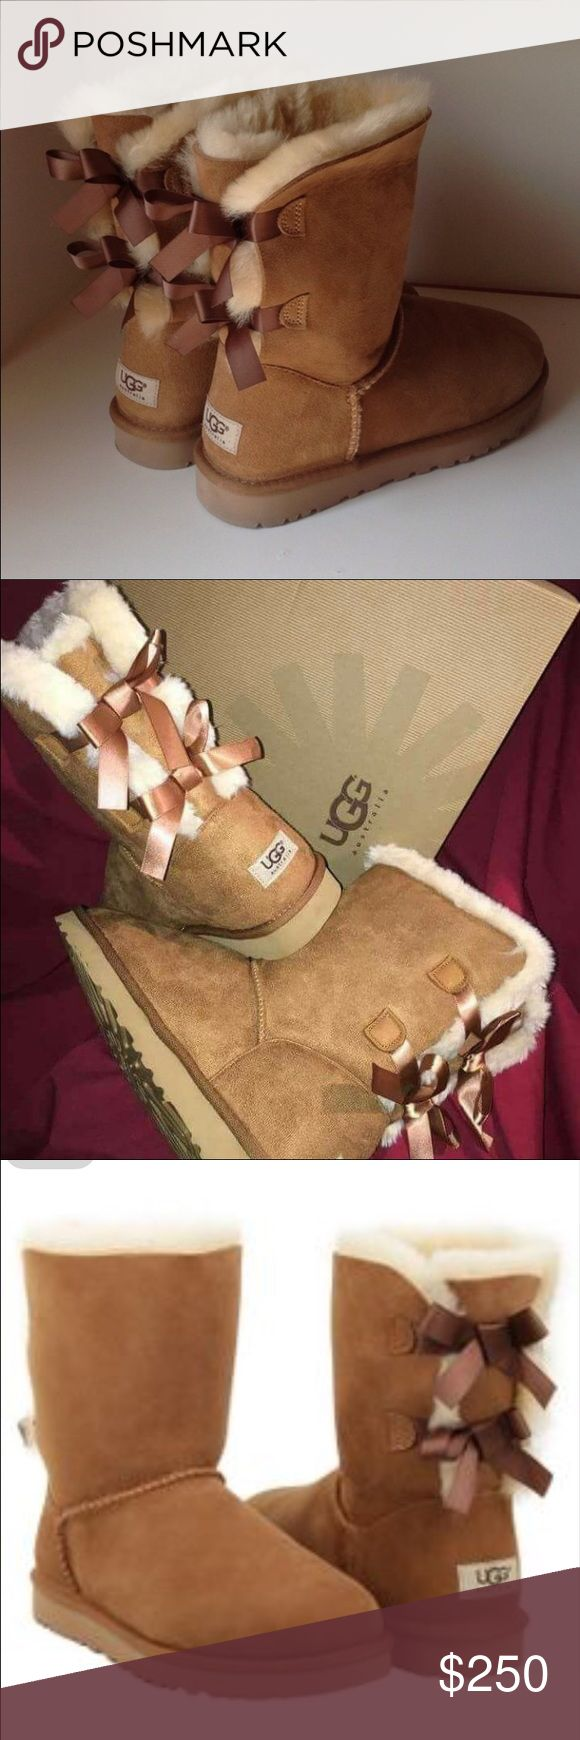 UGG Australia Bailey Bow II Chestnut WORN ONCE Bailey Bow Version II in Chestnut. size 6 in women's. Bough from UGG shop. Waterproof. UGG Shoes Winter & Rain Boots